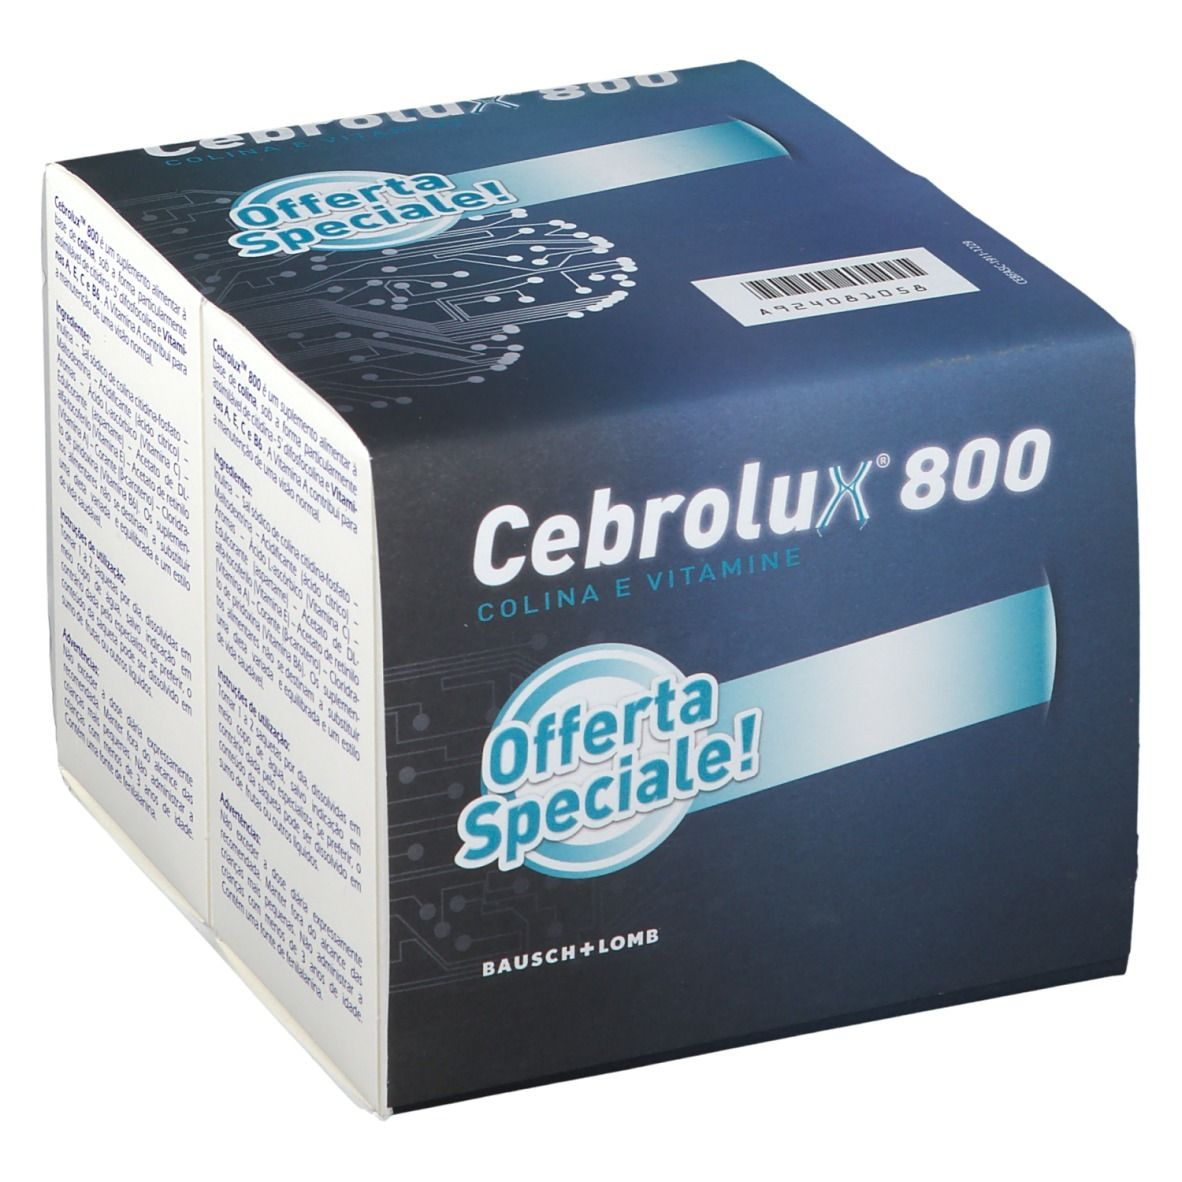 Image of Cerebrolux® 800 Duo Pack